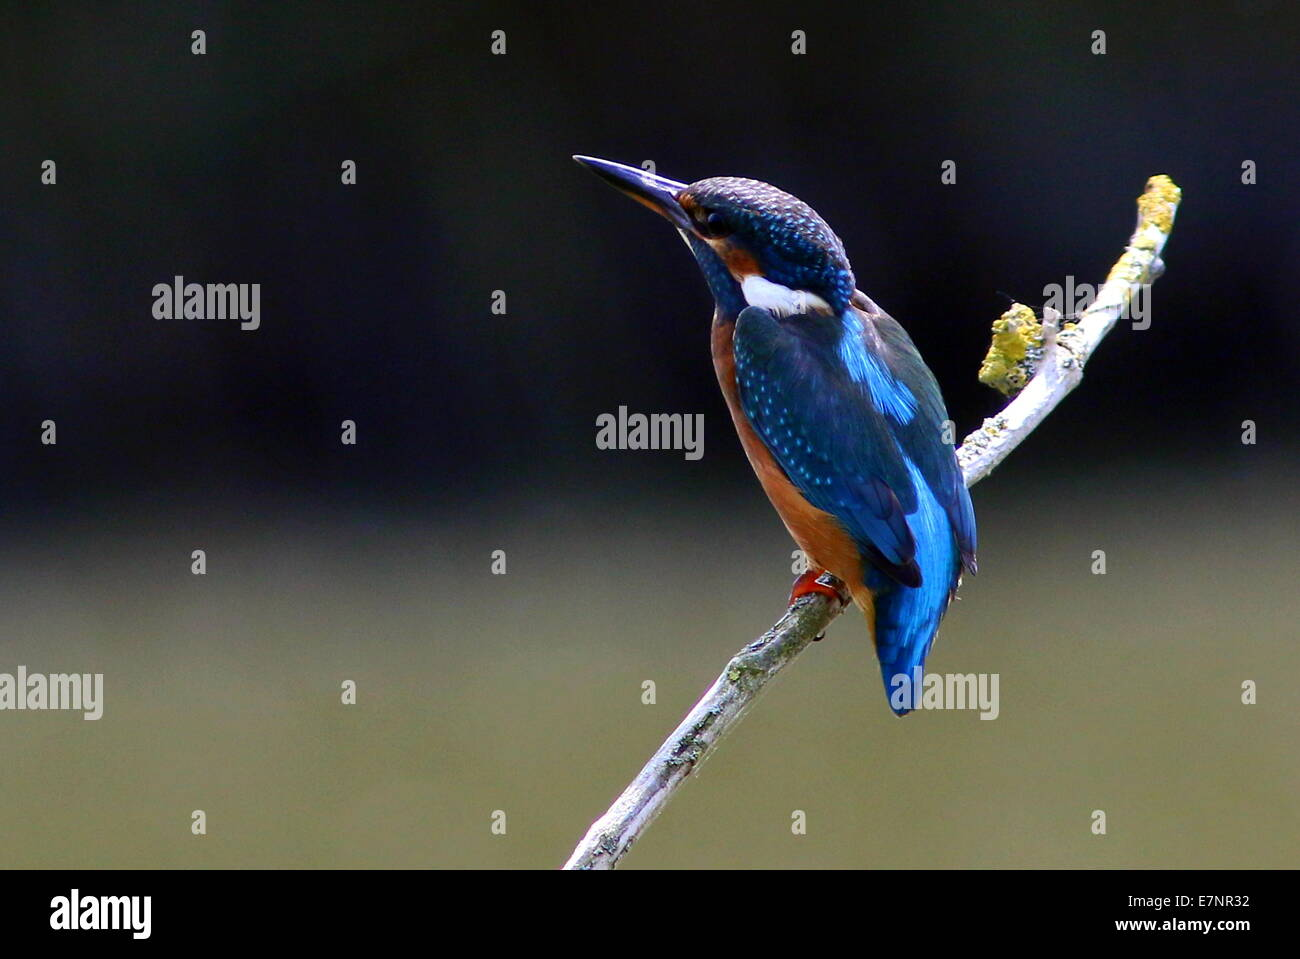 Female Eurasian Kingfisher (Alcedo Atthis) on a branch - Stock Image